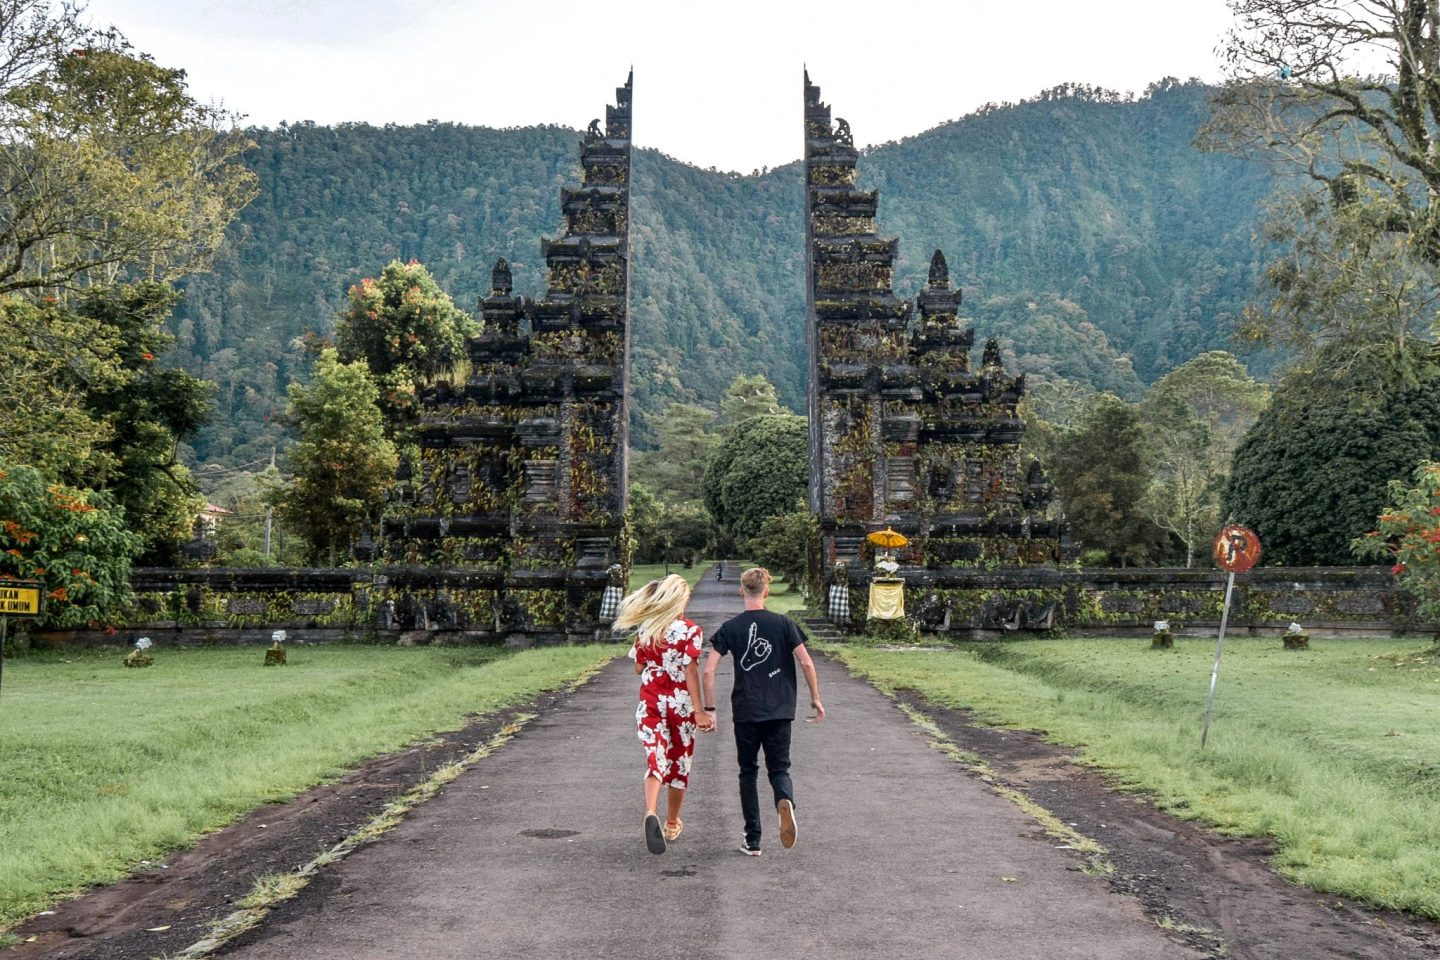 Wanderers & Warriors - Charlie & Lauren UK Travel Couple - The Famous Bali Gates - Handara Golf & Resort